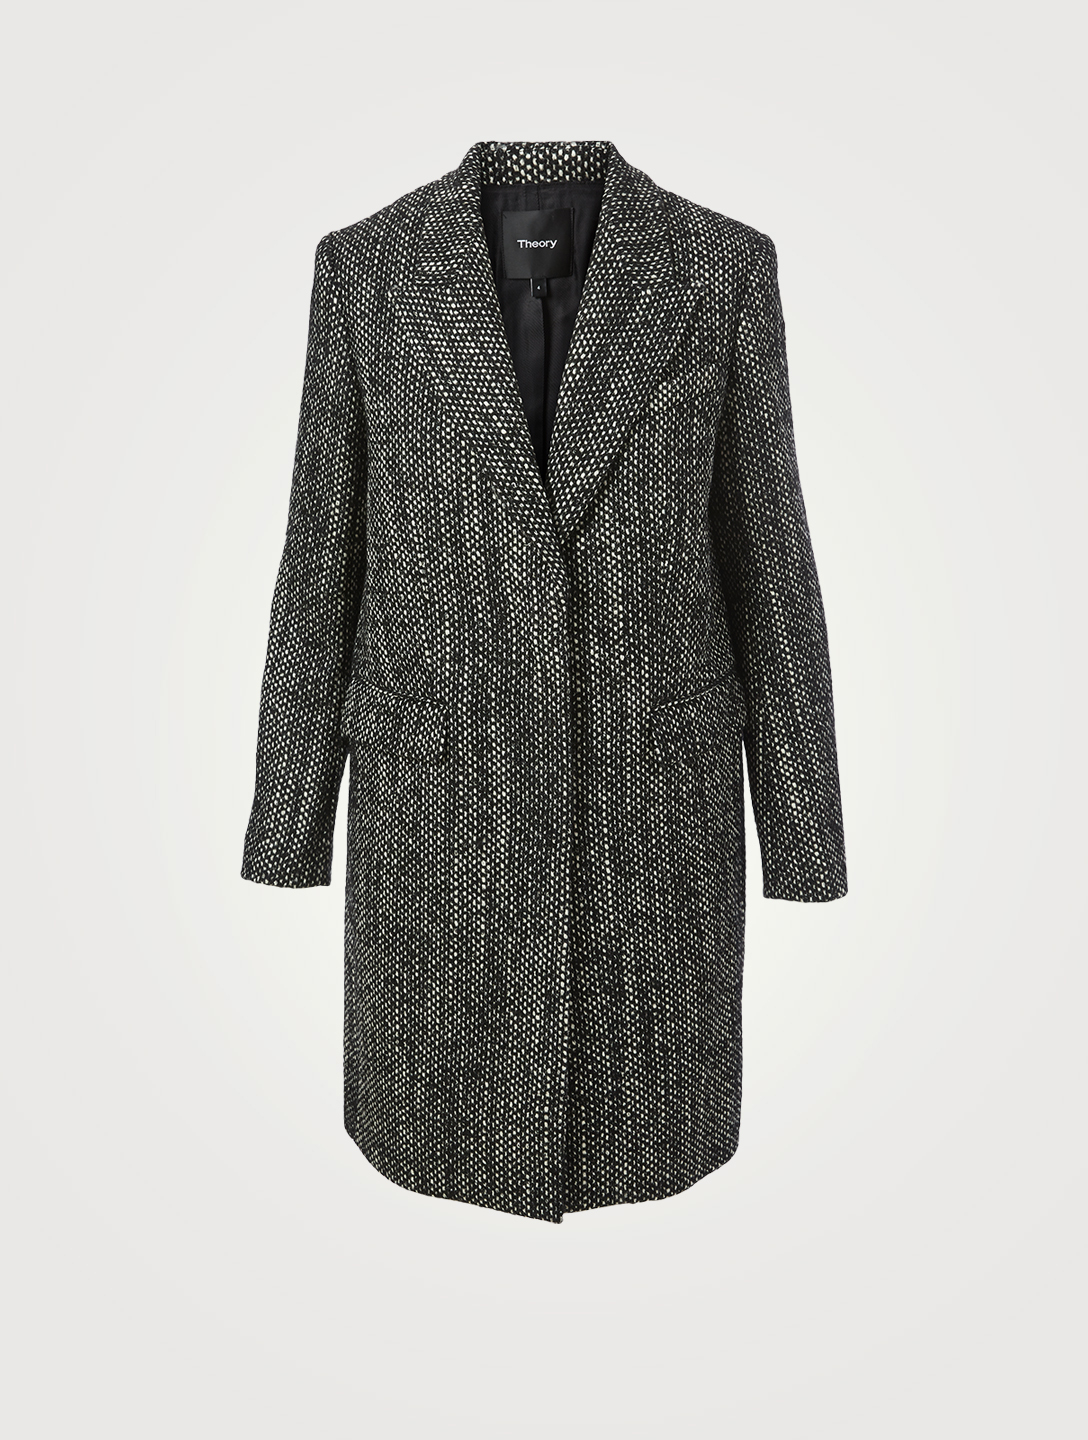 THEORY Pressed Tweed Midi Coat Women's Black